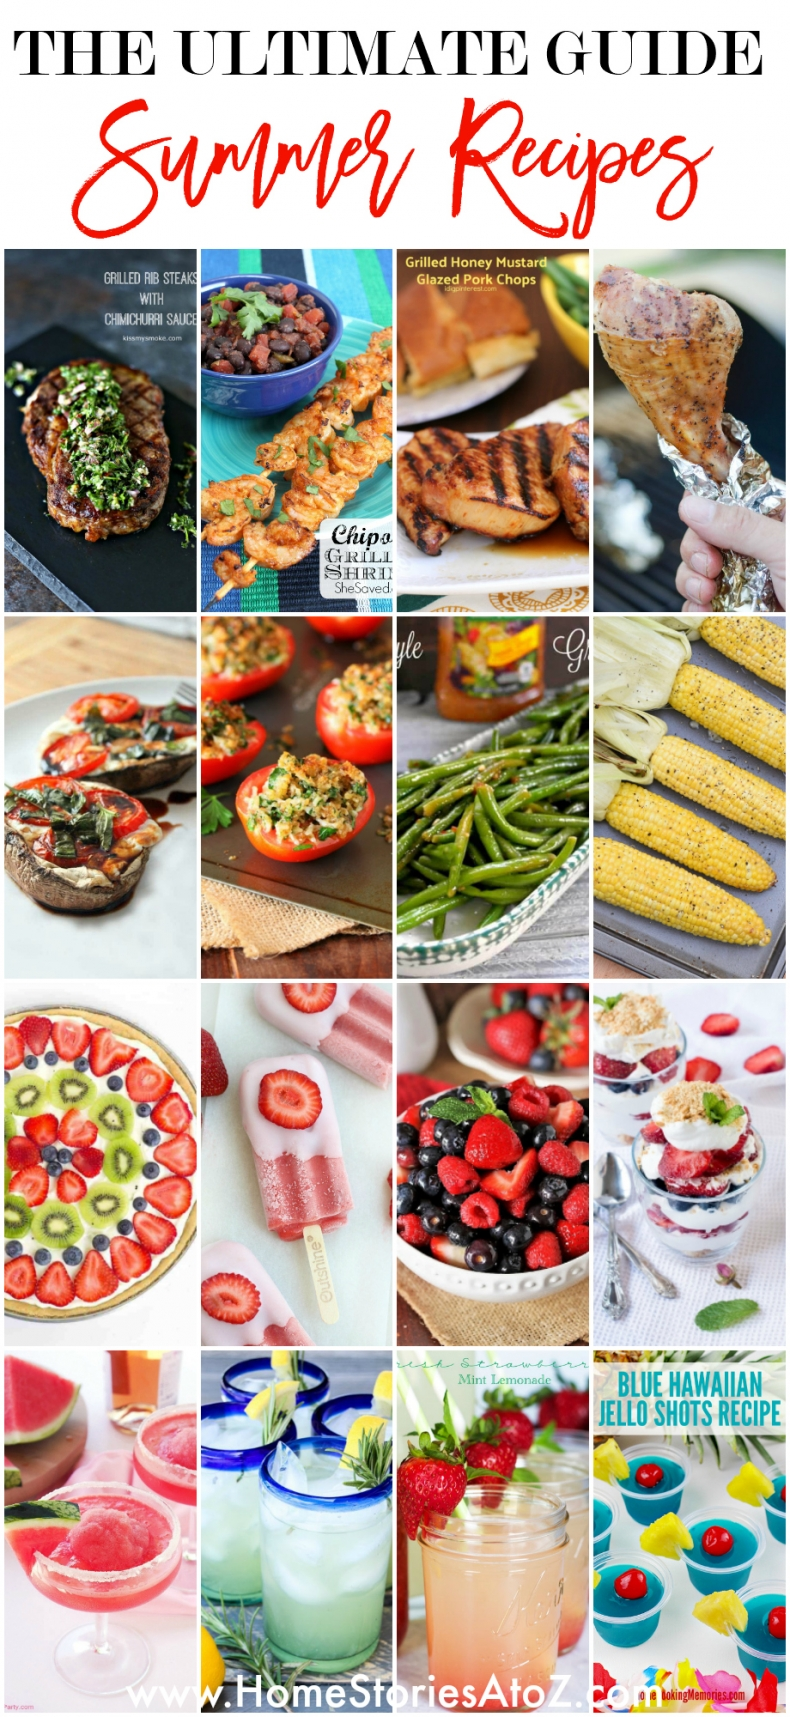 The Ultimate Guide to Summer Recipes - 80+ Best Summer Recipes - Entrees, Appetizers, Salads, Desserts, and Drinks!